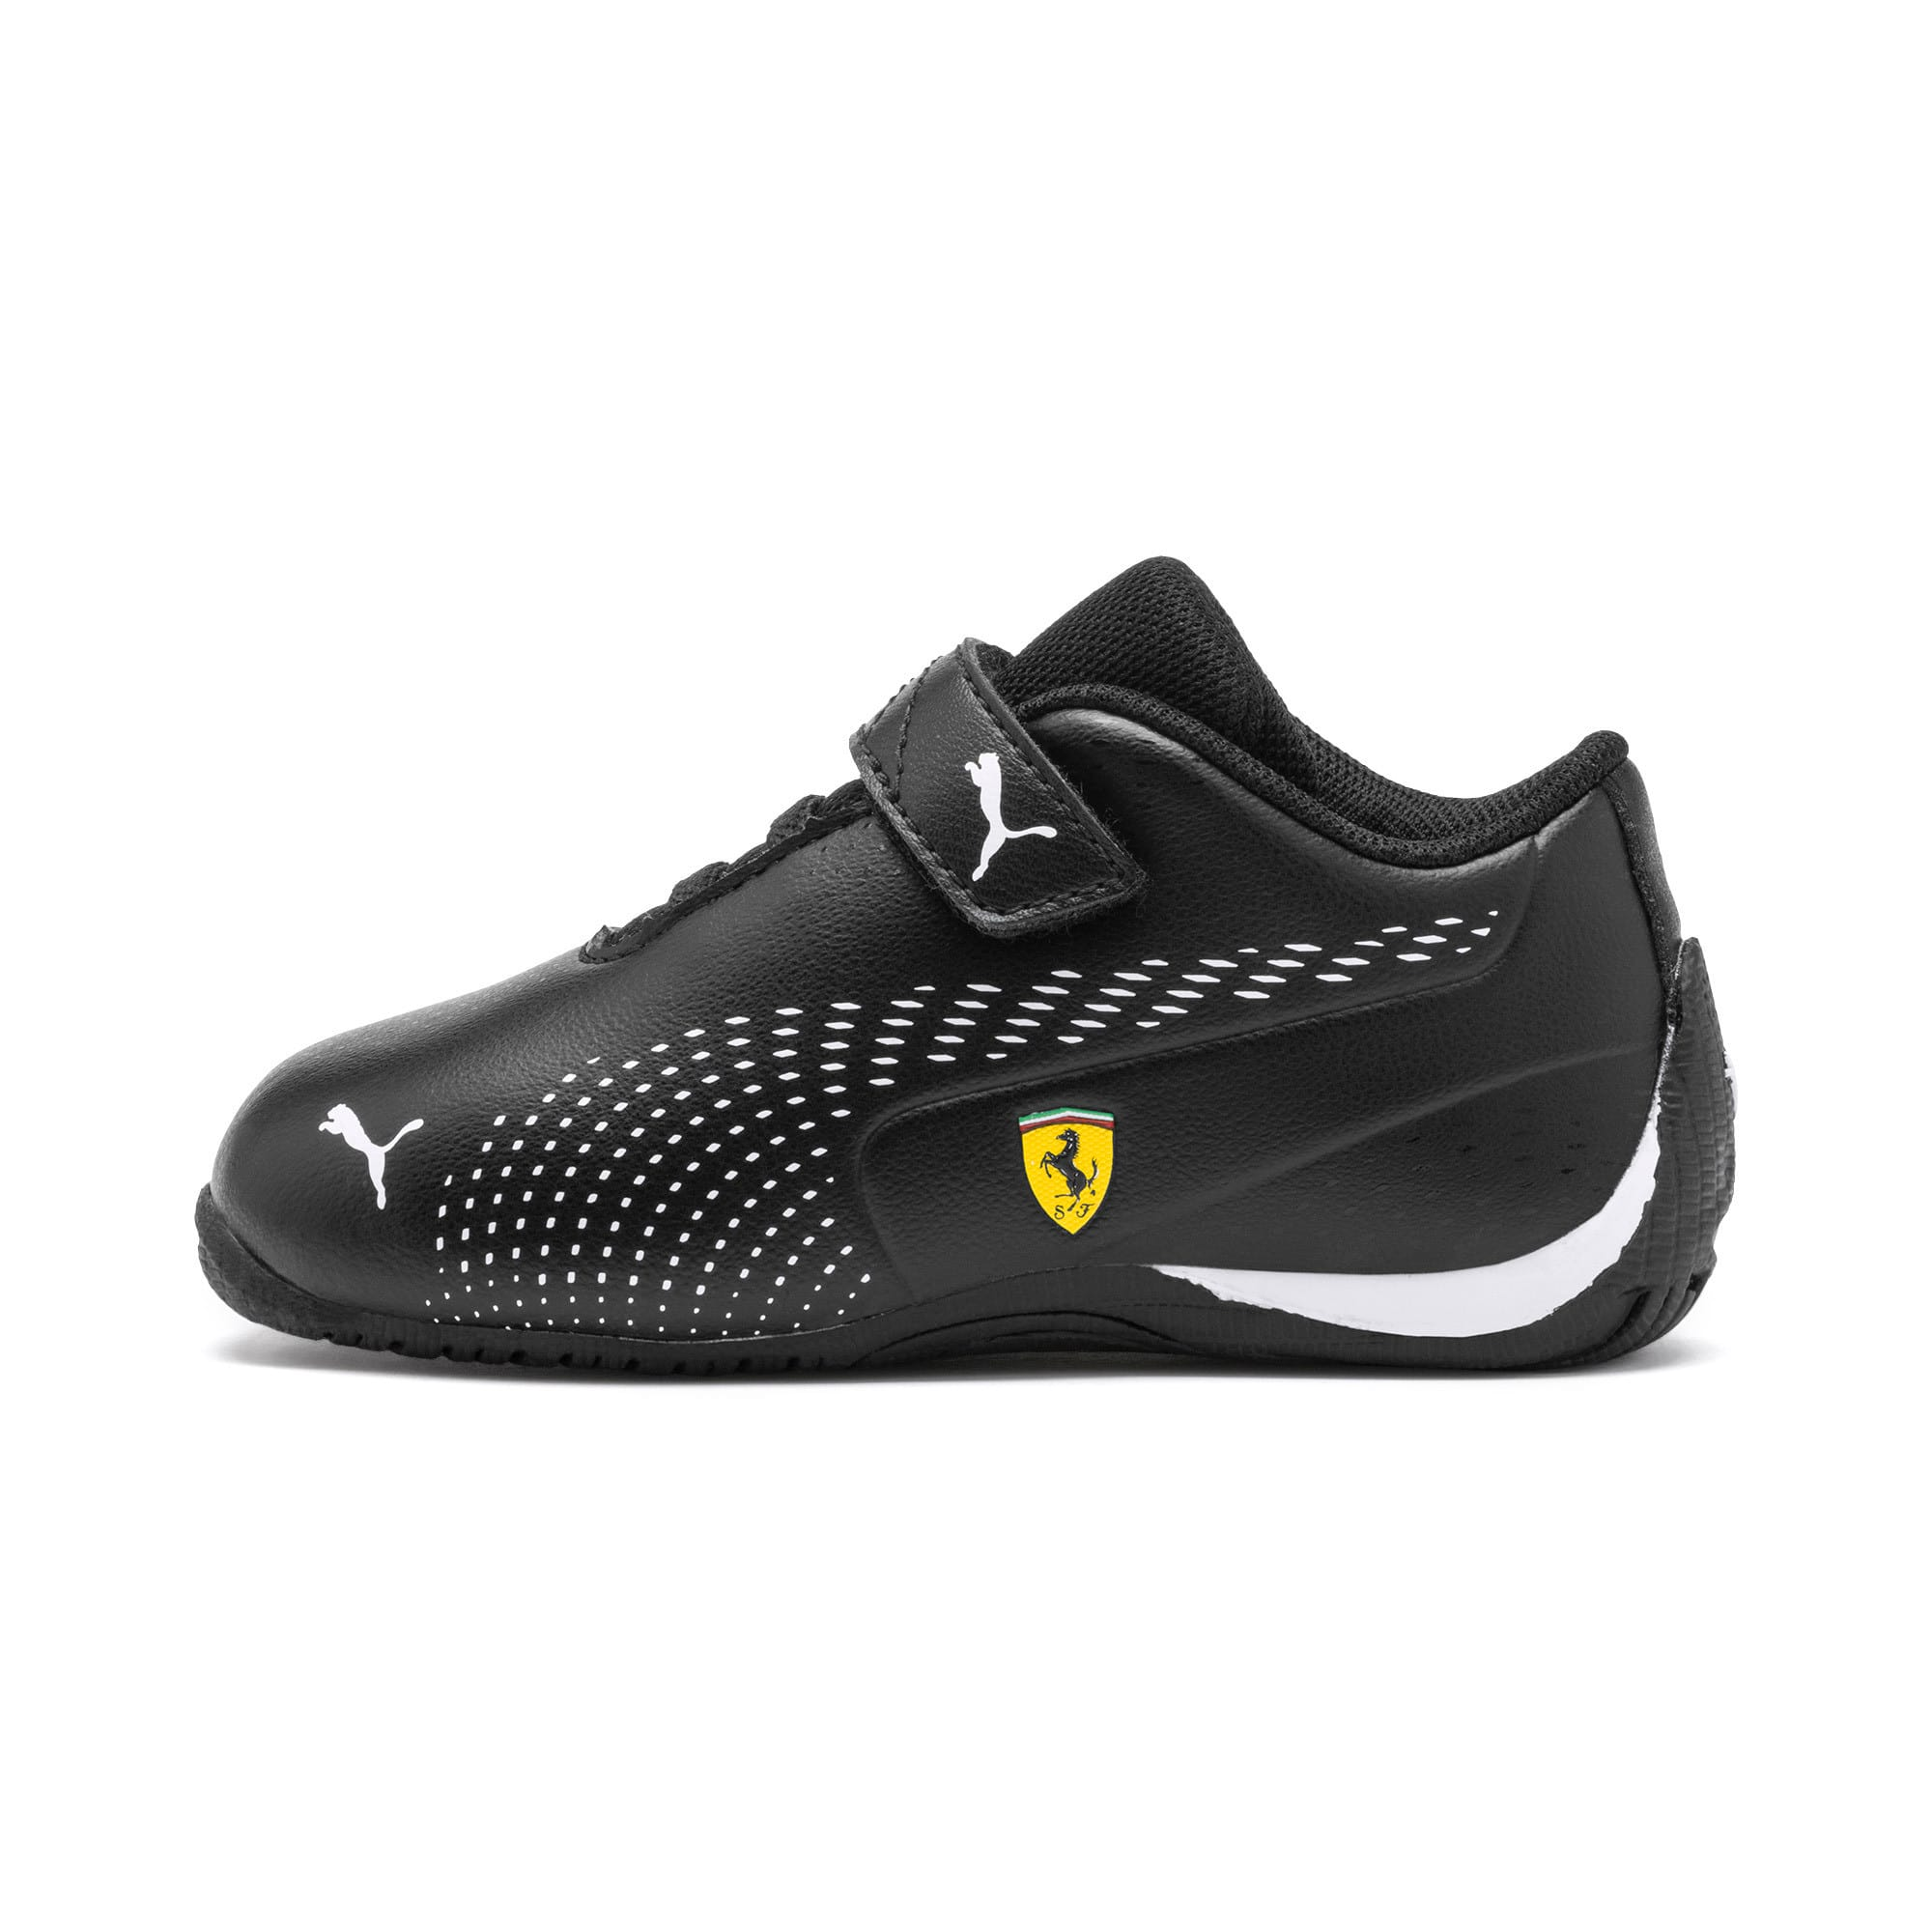 Thumbnail 1 of Scuderia Ferrari Drift Cat 5 Ultra II Toddler Shoes, Puma Black-Puma White, medium